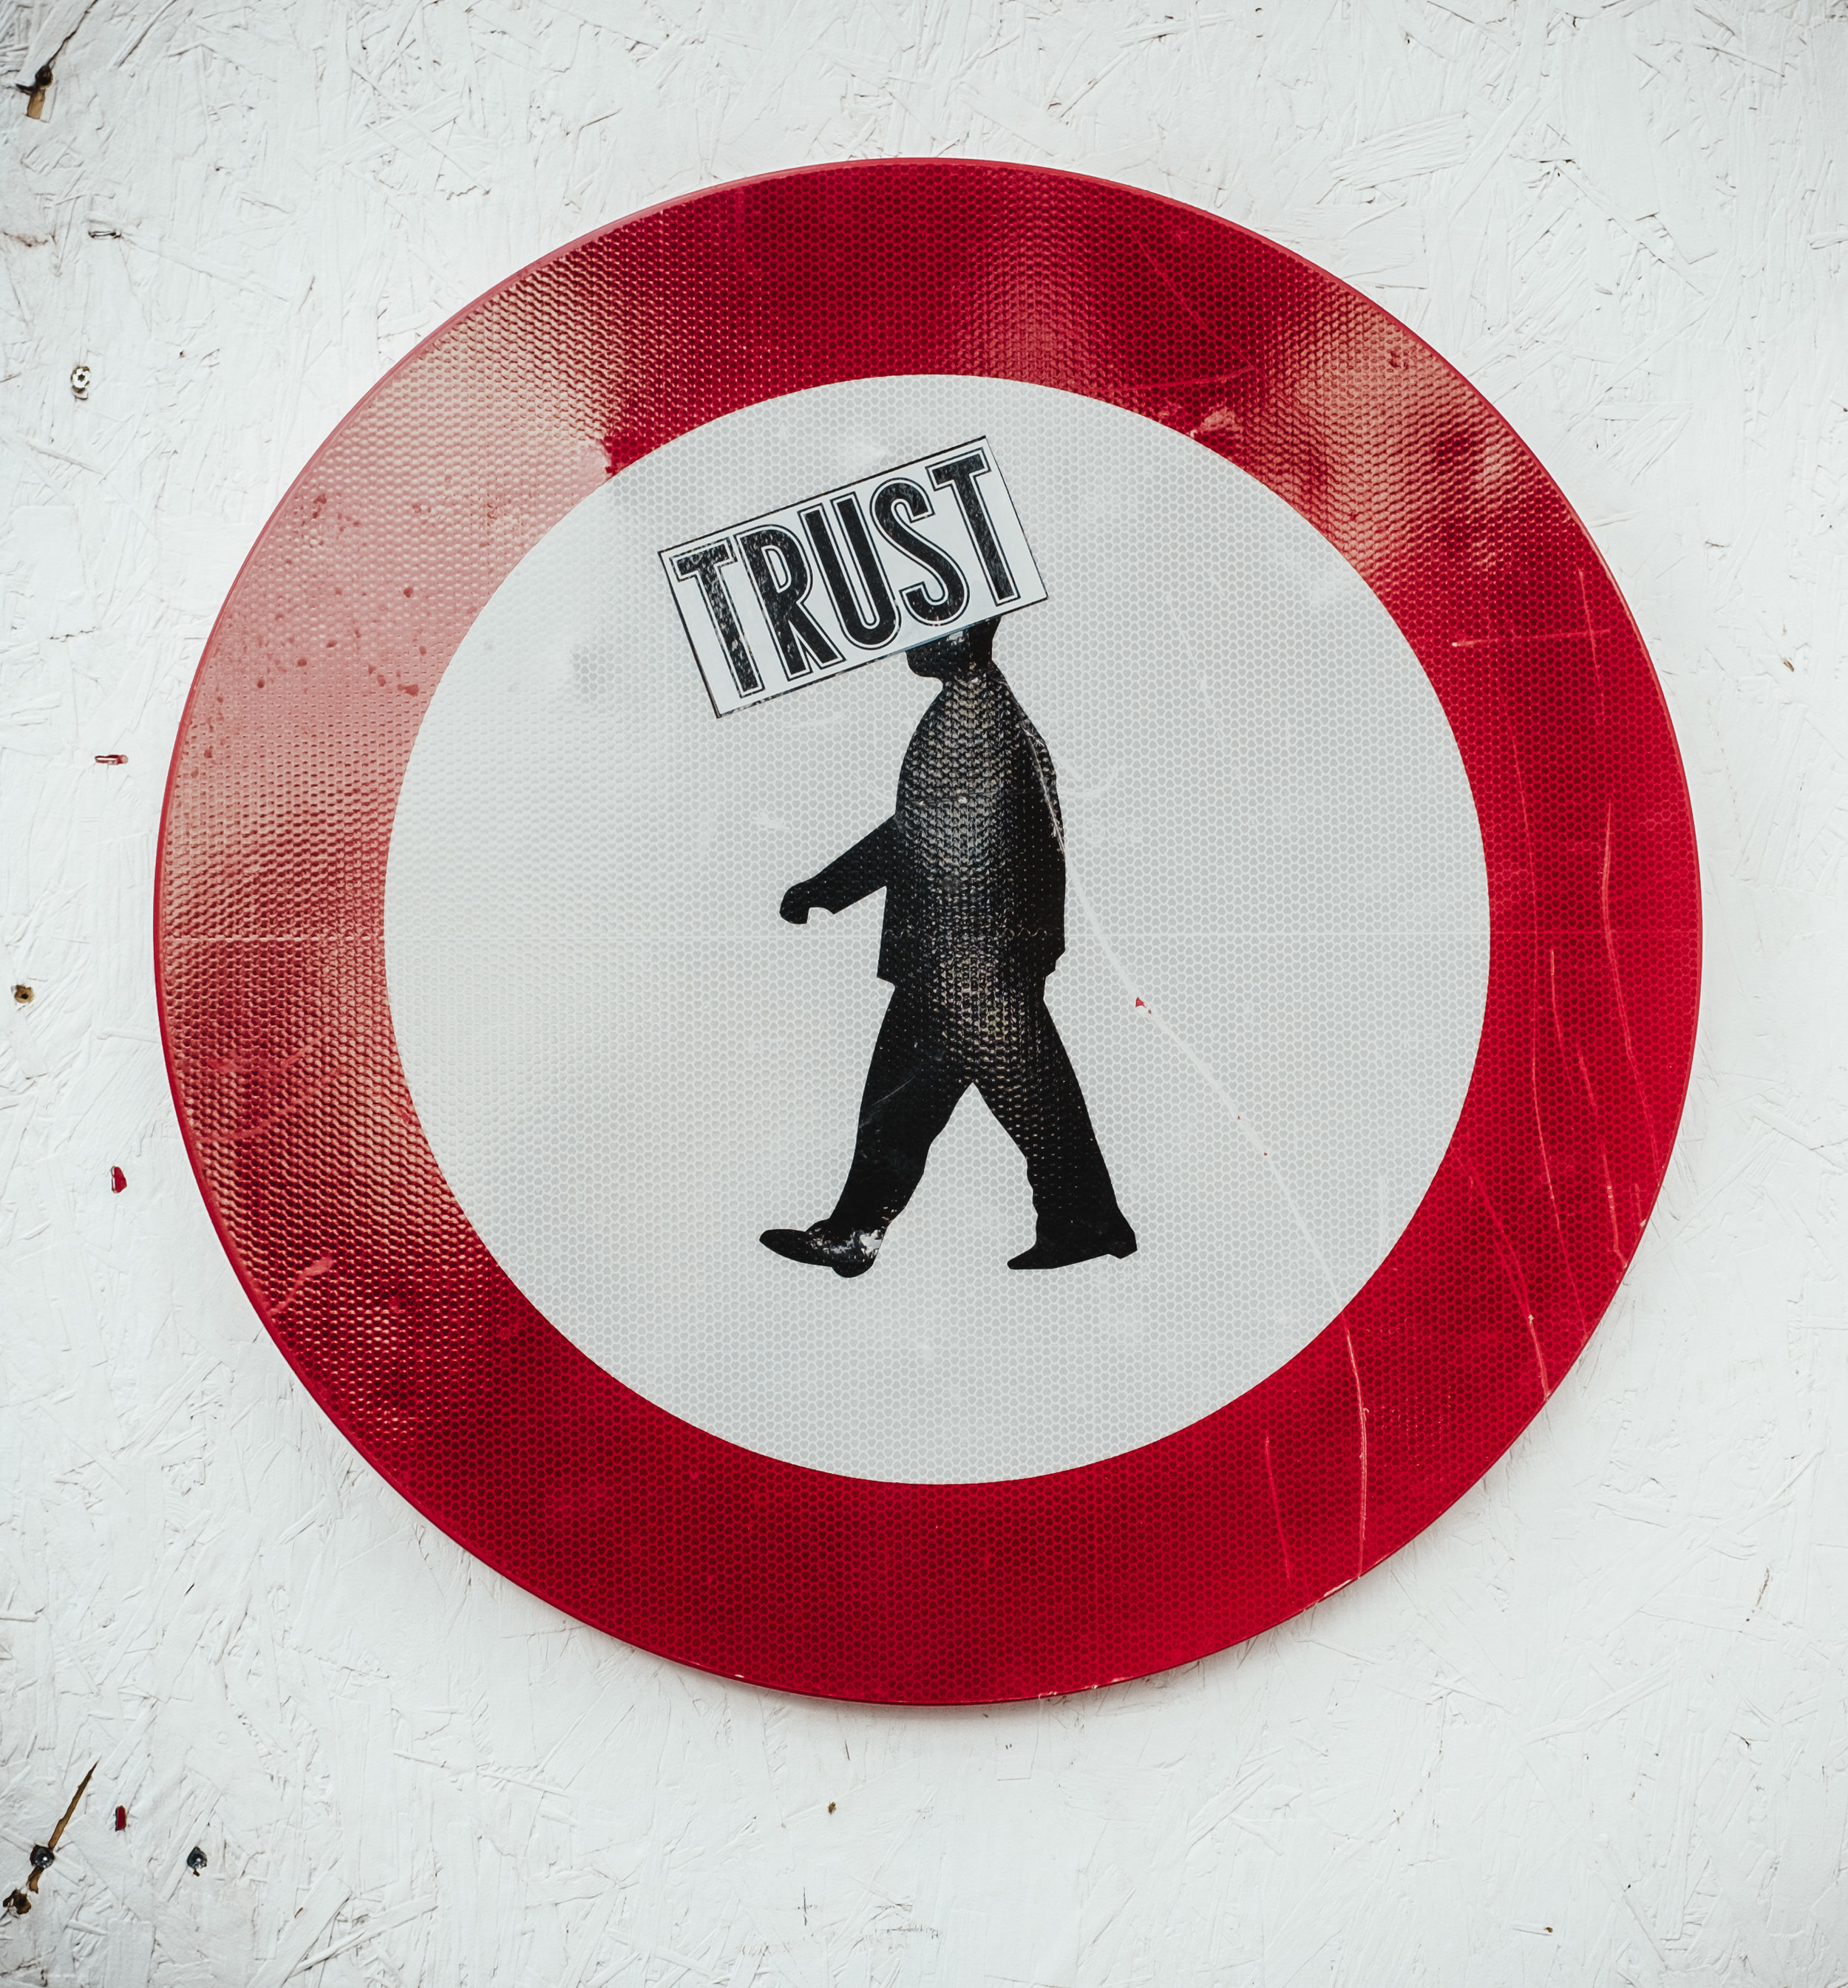 6 Signs your website is not trustworthy